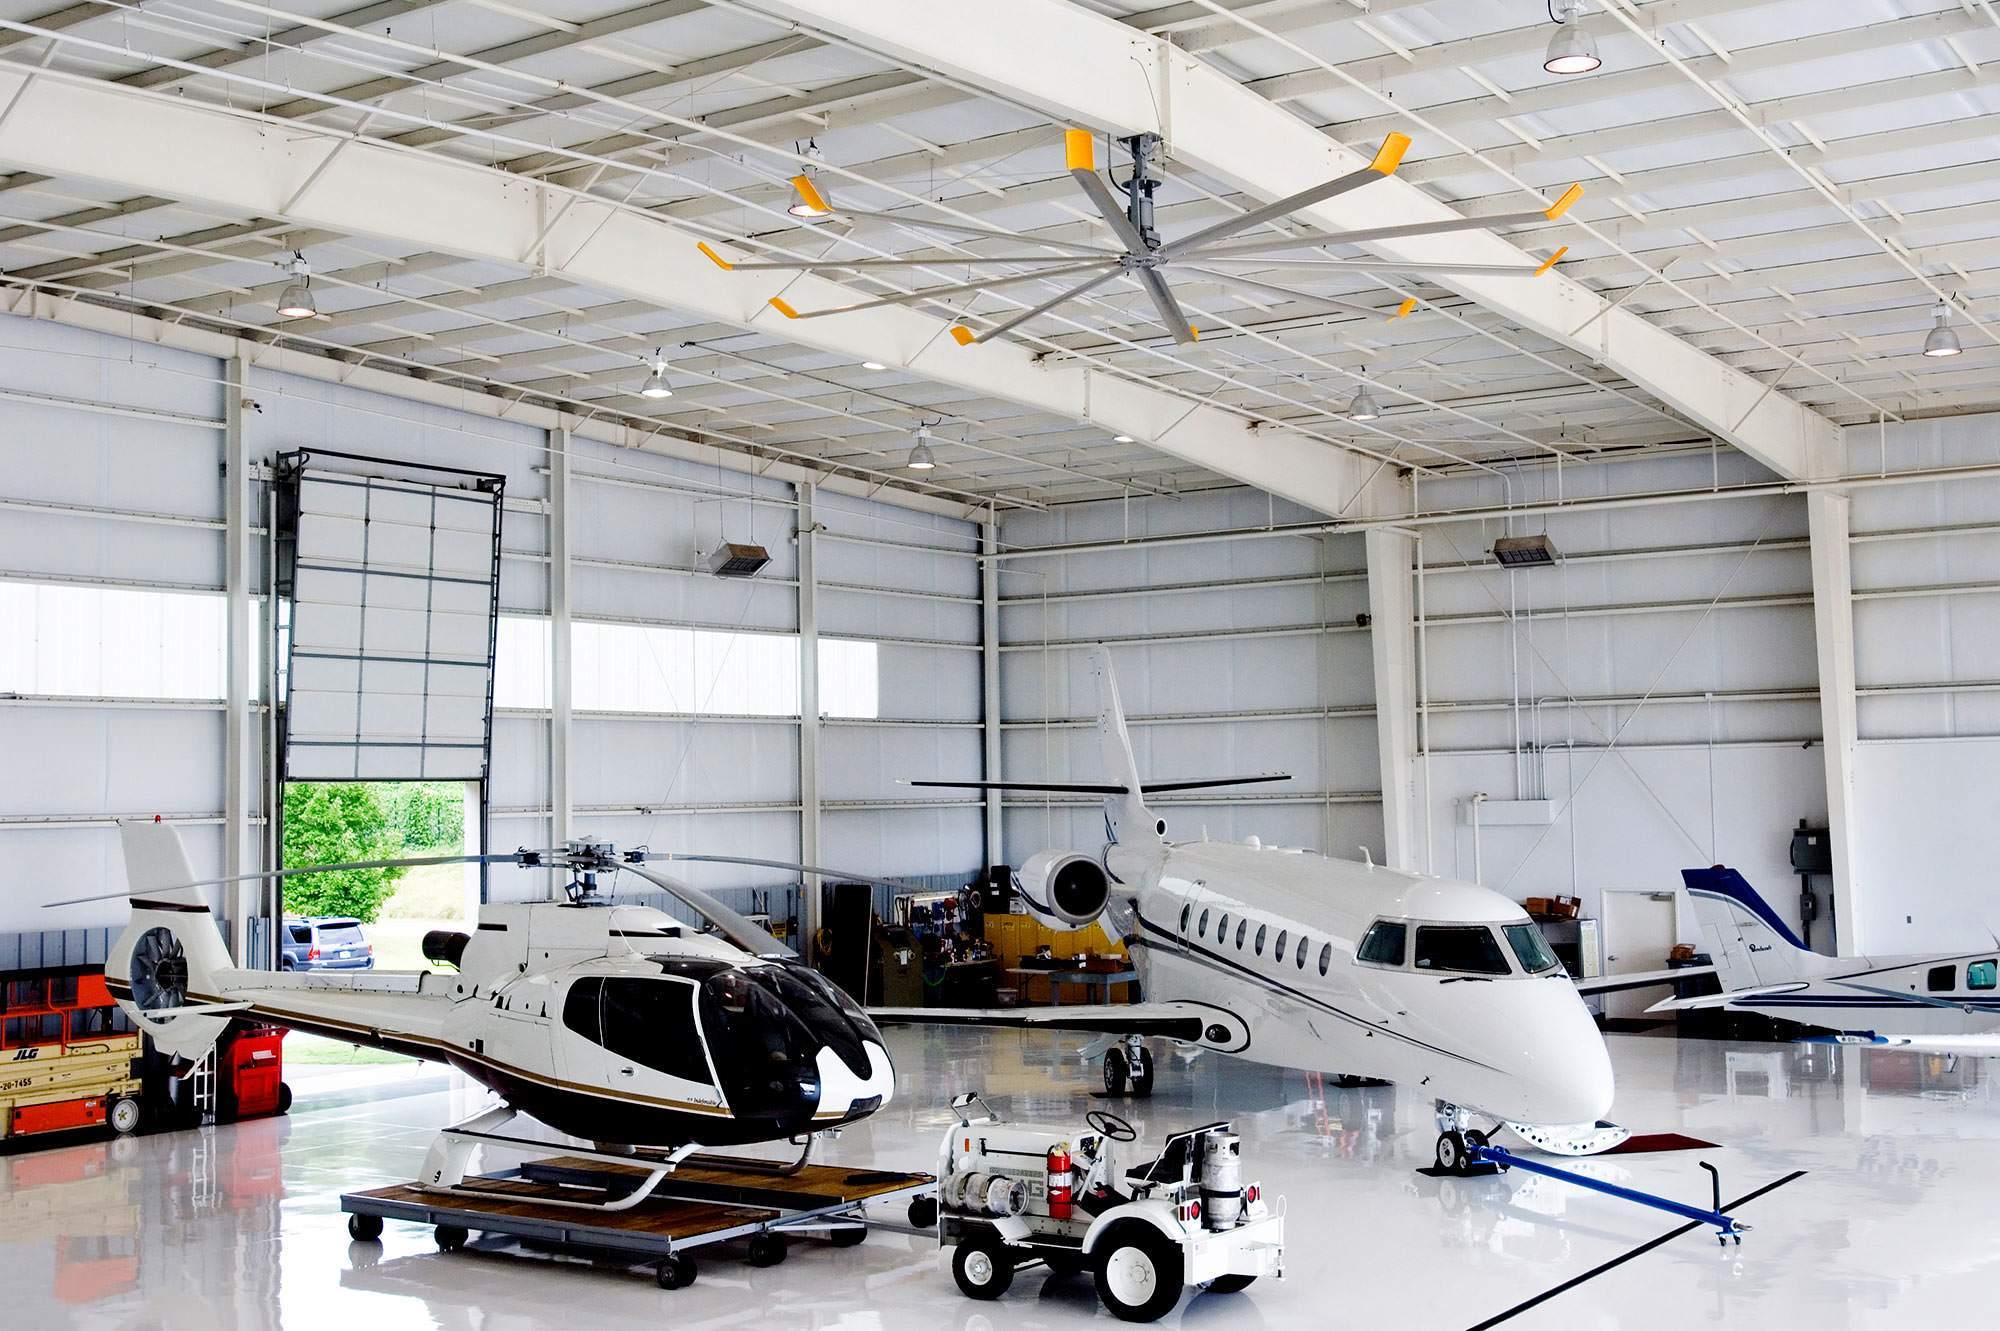 Private Plane With Garage : Private airplane hanger ceiling fans from big ass